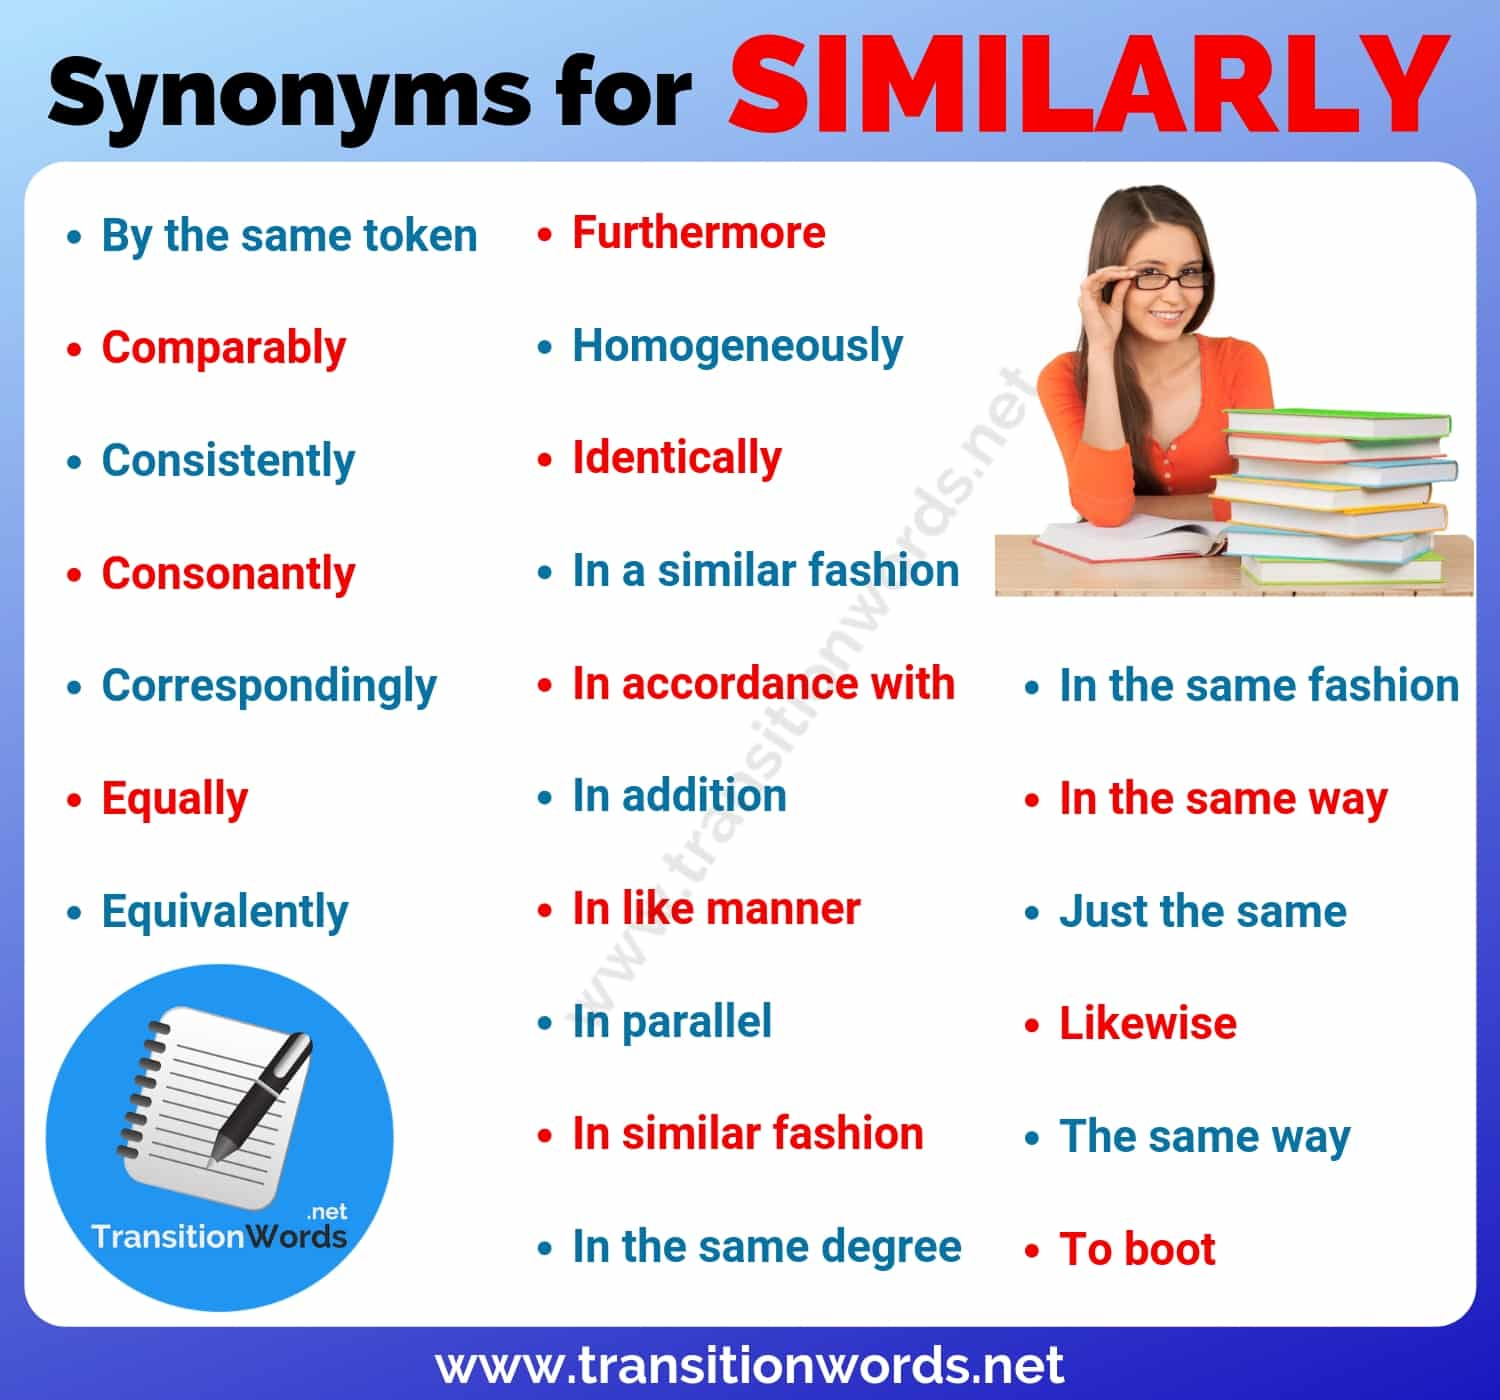 SIMILARLY Synonym: Useful List of 23 Synonyms for Similarly with Examples